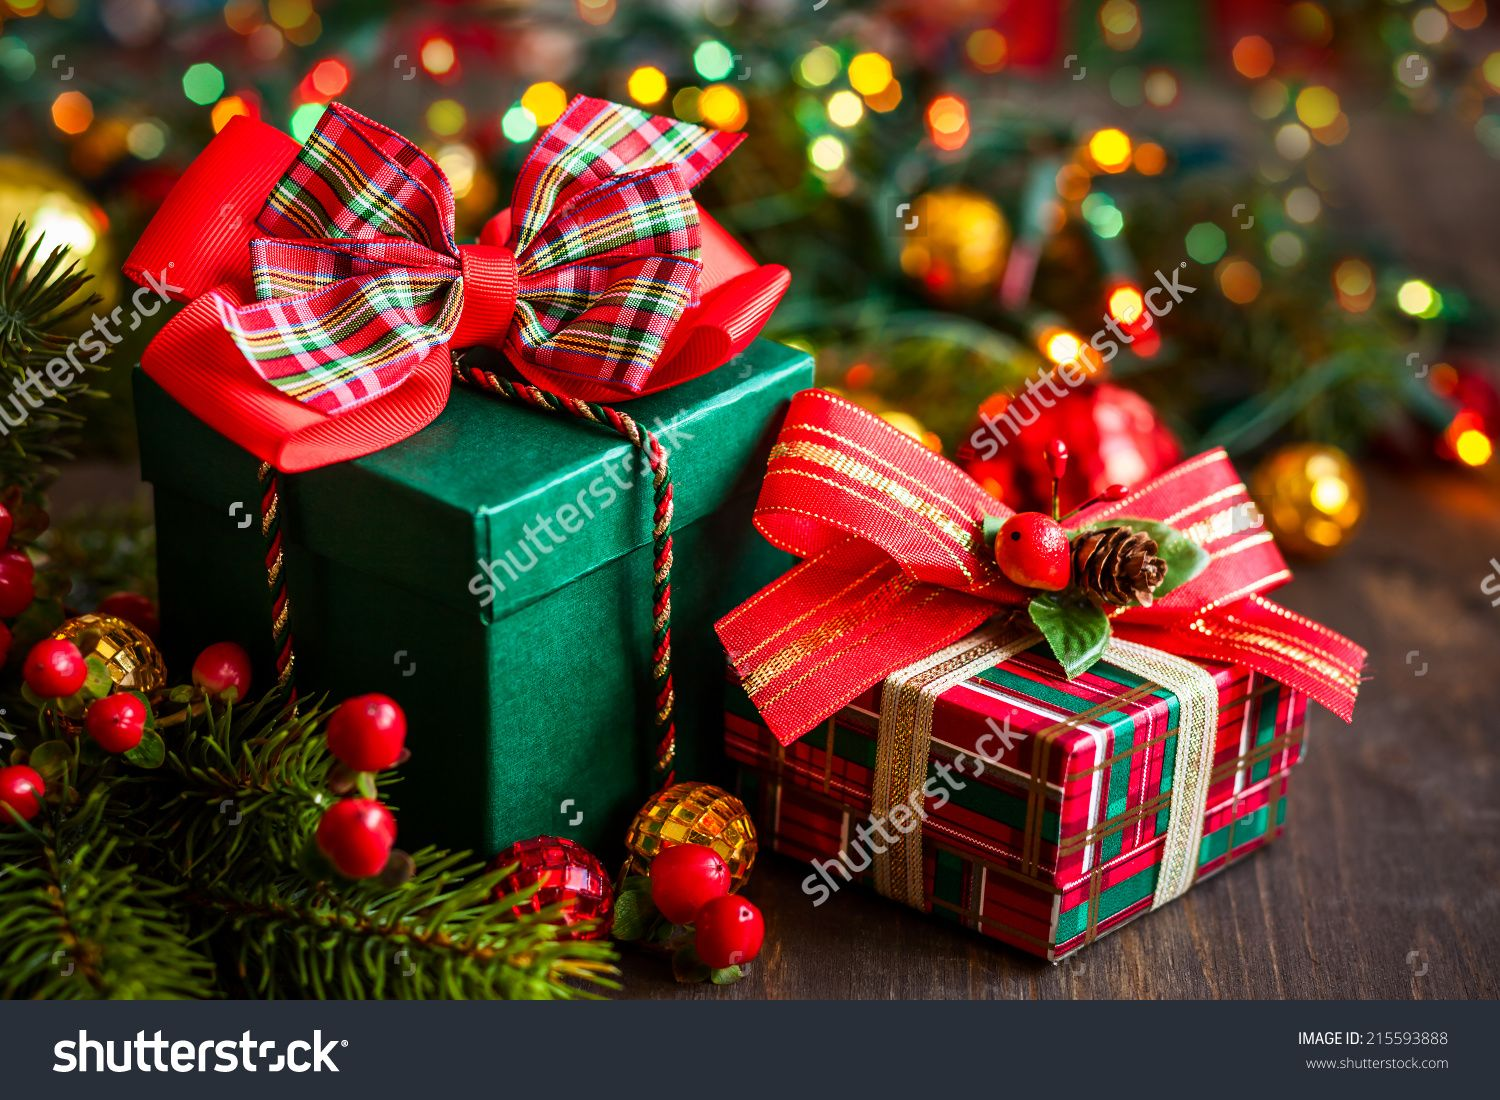 christmas gift boxes with decorations foto stock 215593888 shutterstock